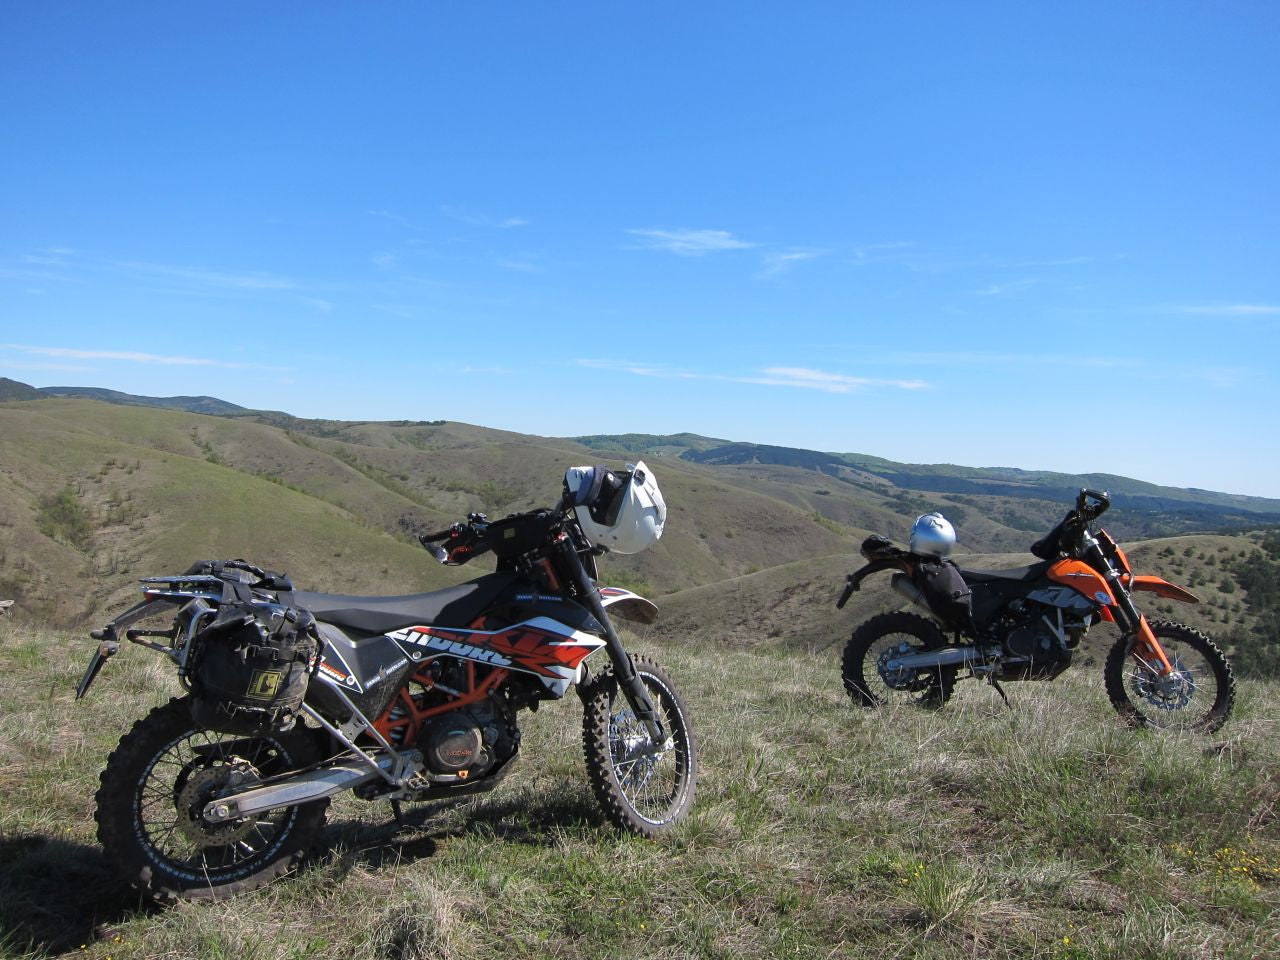 Ride pictures - April 2016. - Tara and Zlatibor, Serbia